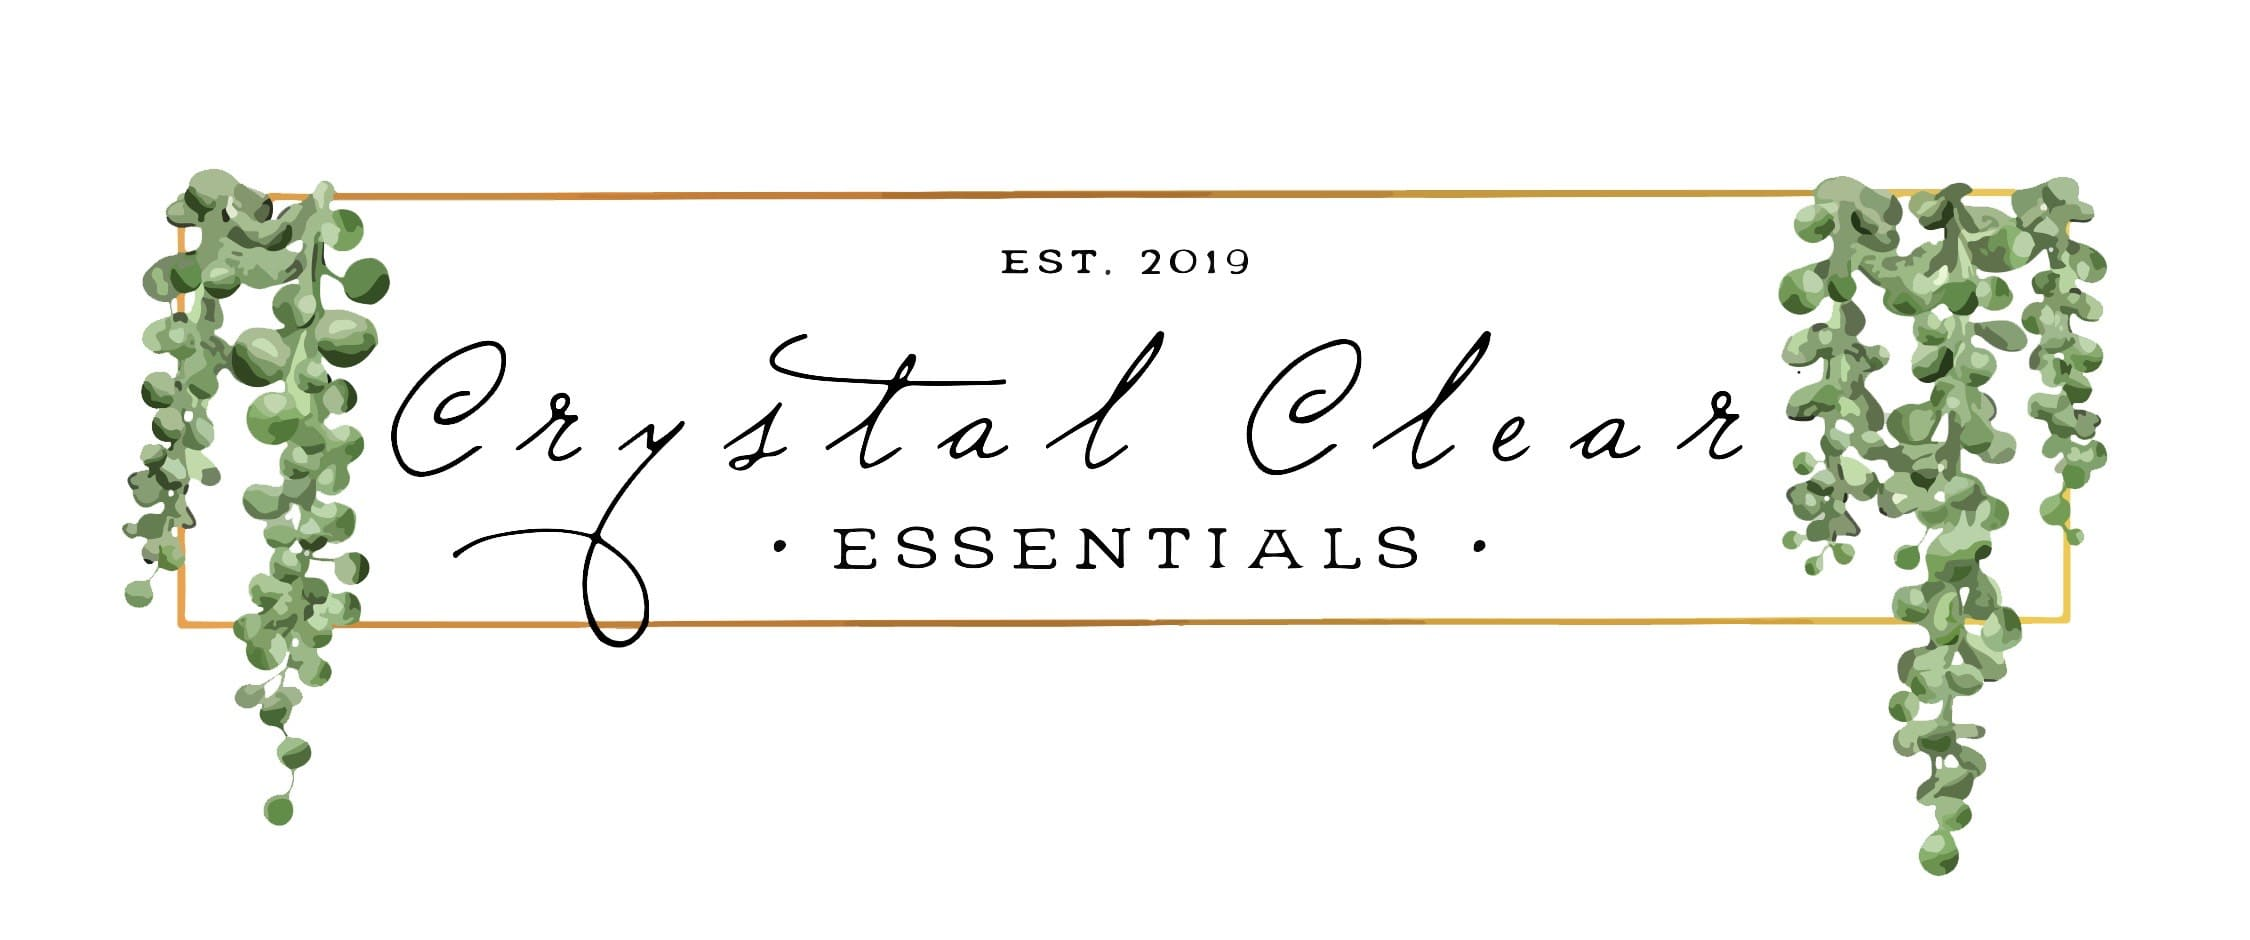 EFXfitness is proud to partner with Crystal Clear Essentials, Provide a range of wellness services including aromatherapy and wellness coaching